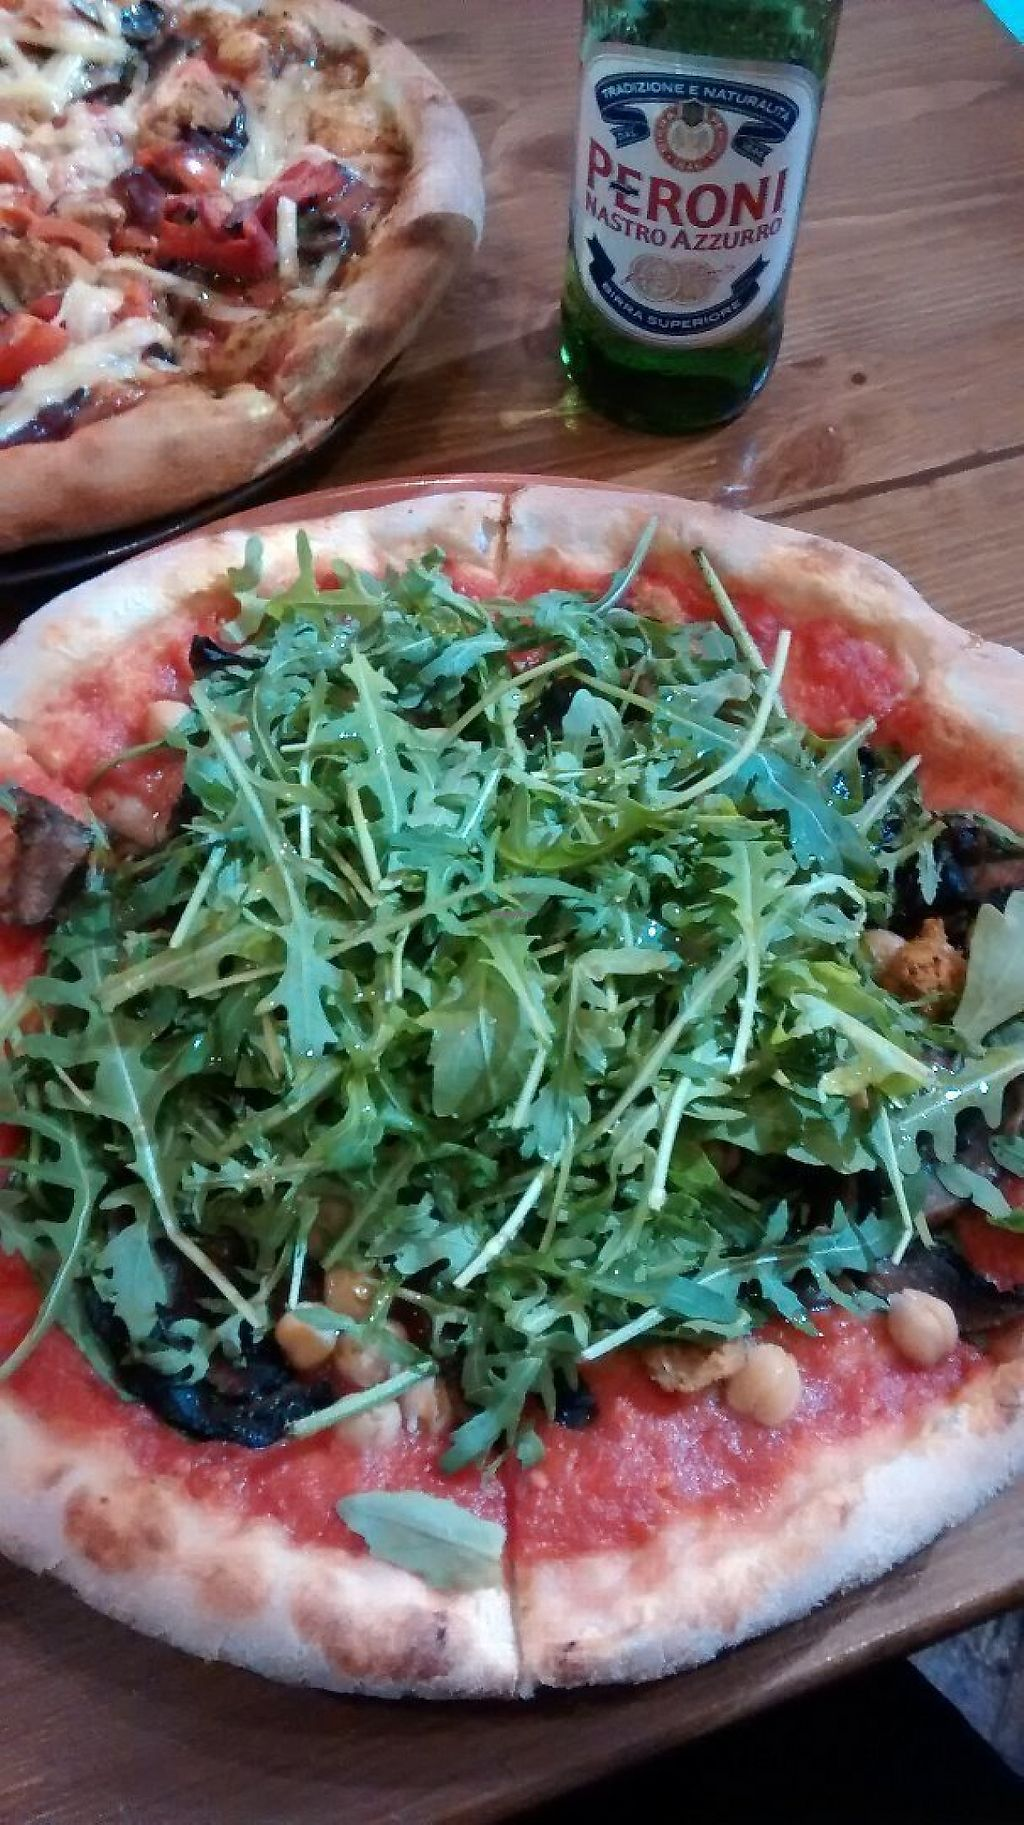 """Photo of Aperitivo  by <a href=""""/members/profile/BlisterBlue"""">BlisterBlue</a> <br/>Pizza with chickpeas, OMG!!!! <br/> December 22, 2016  - <a href='/contact/abuse/image/84146/204103'>Report</a>"""